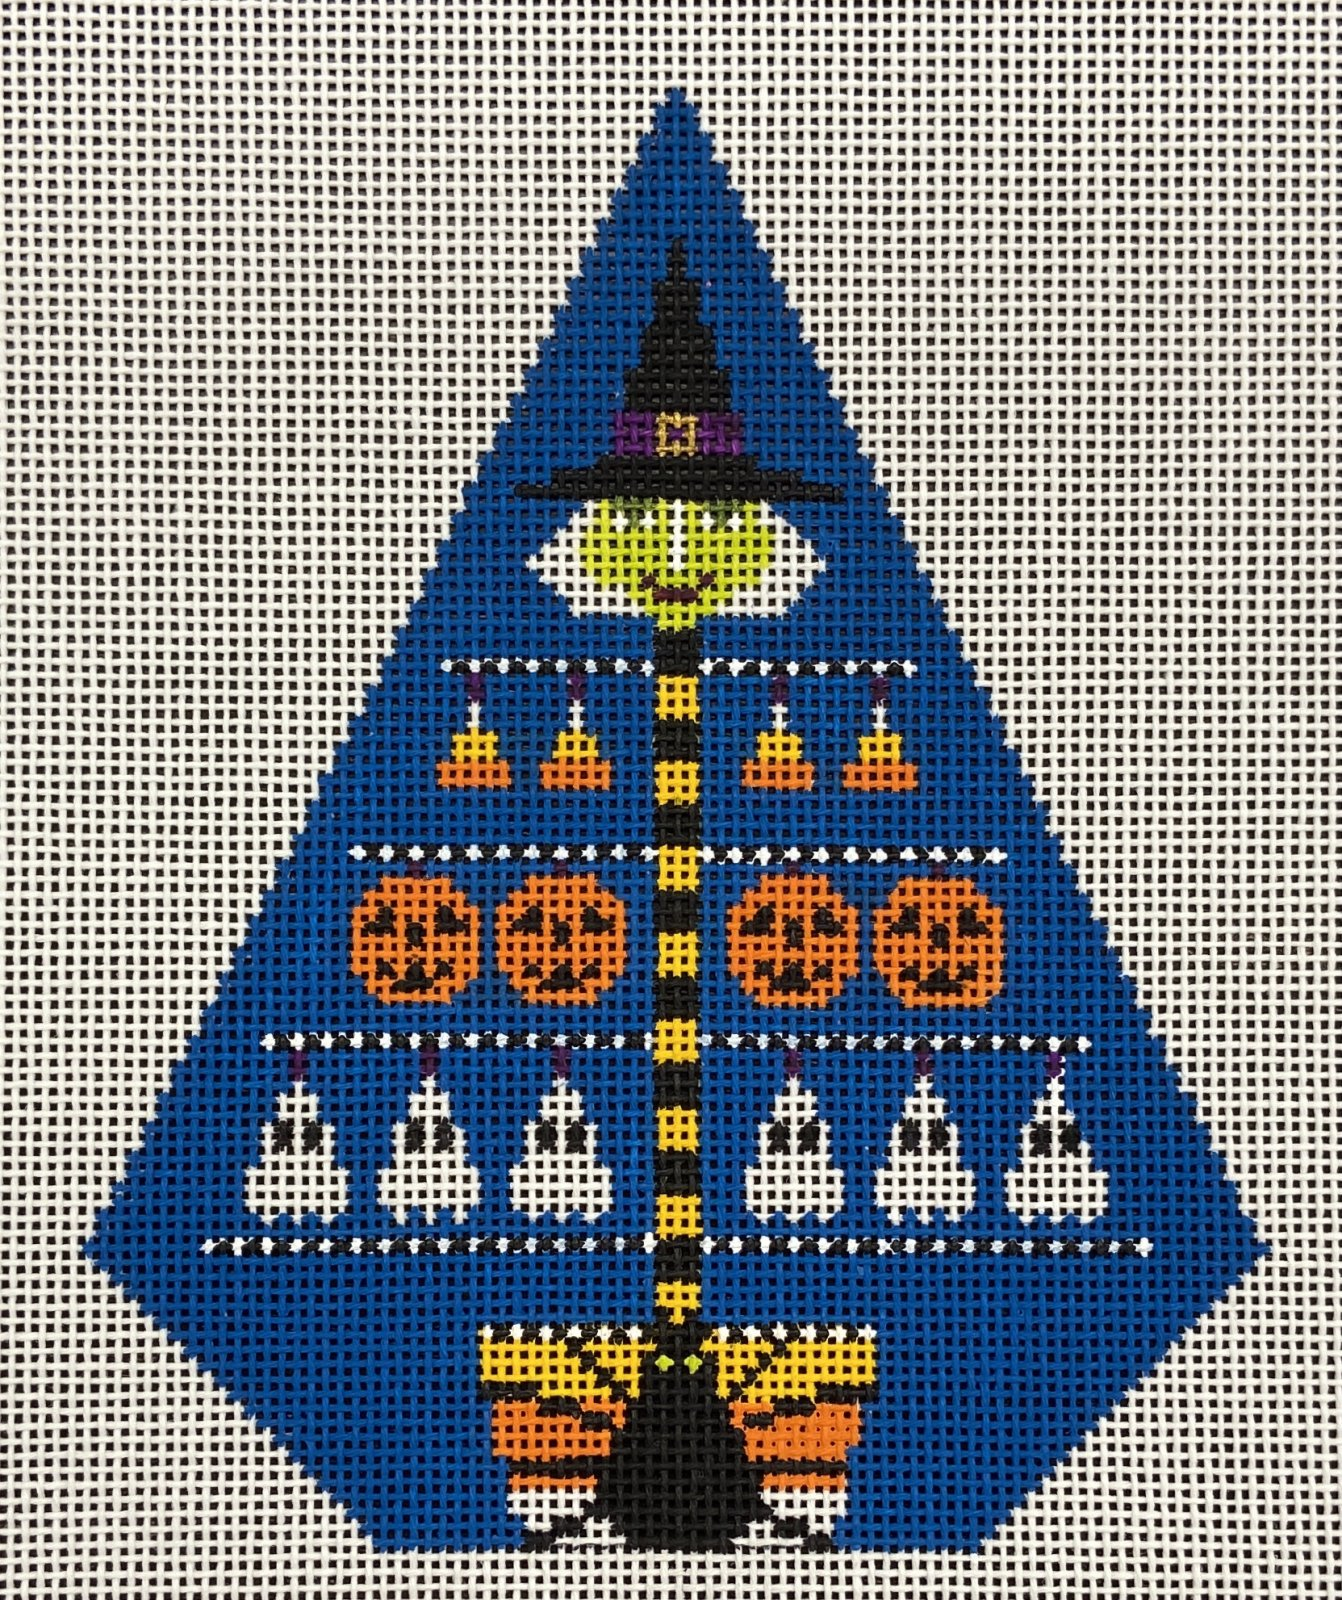 STH348 Halloween Witch Tree Shelly Tribbey